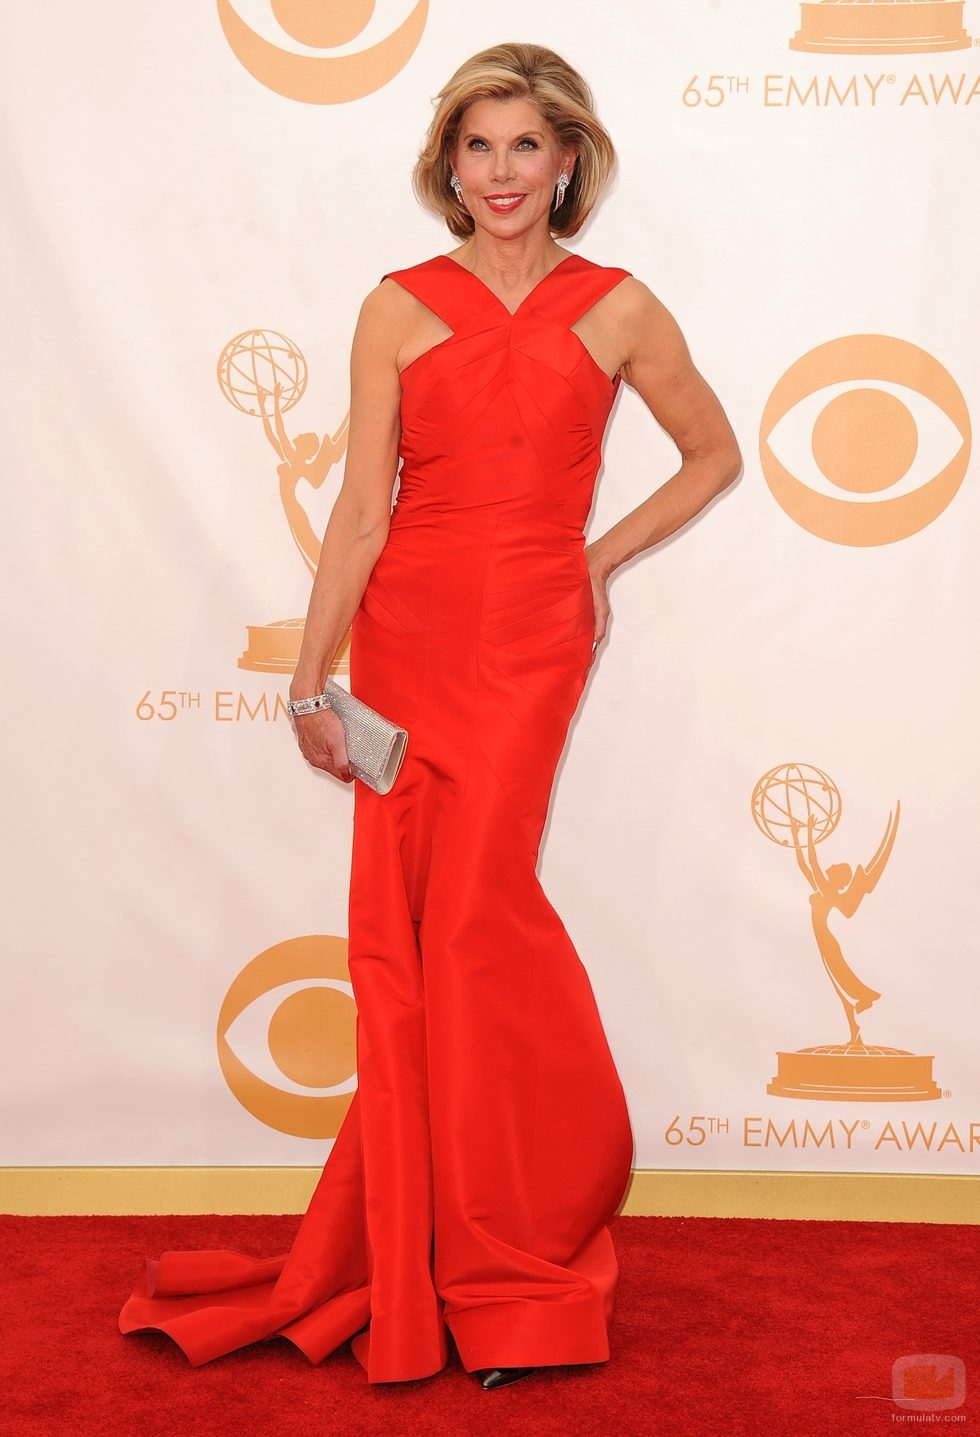 Christine Baranski at the emmys